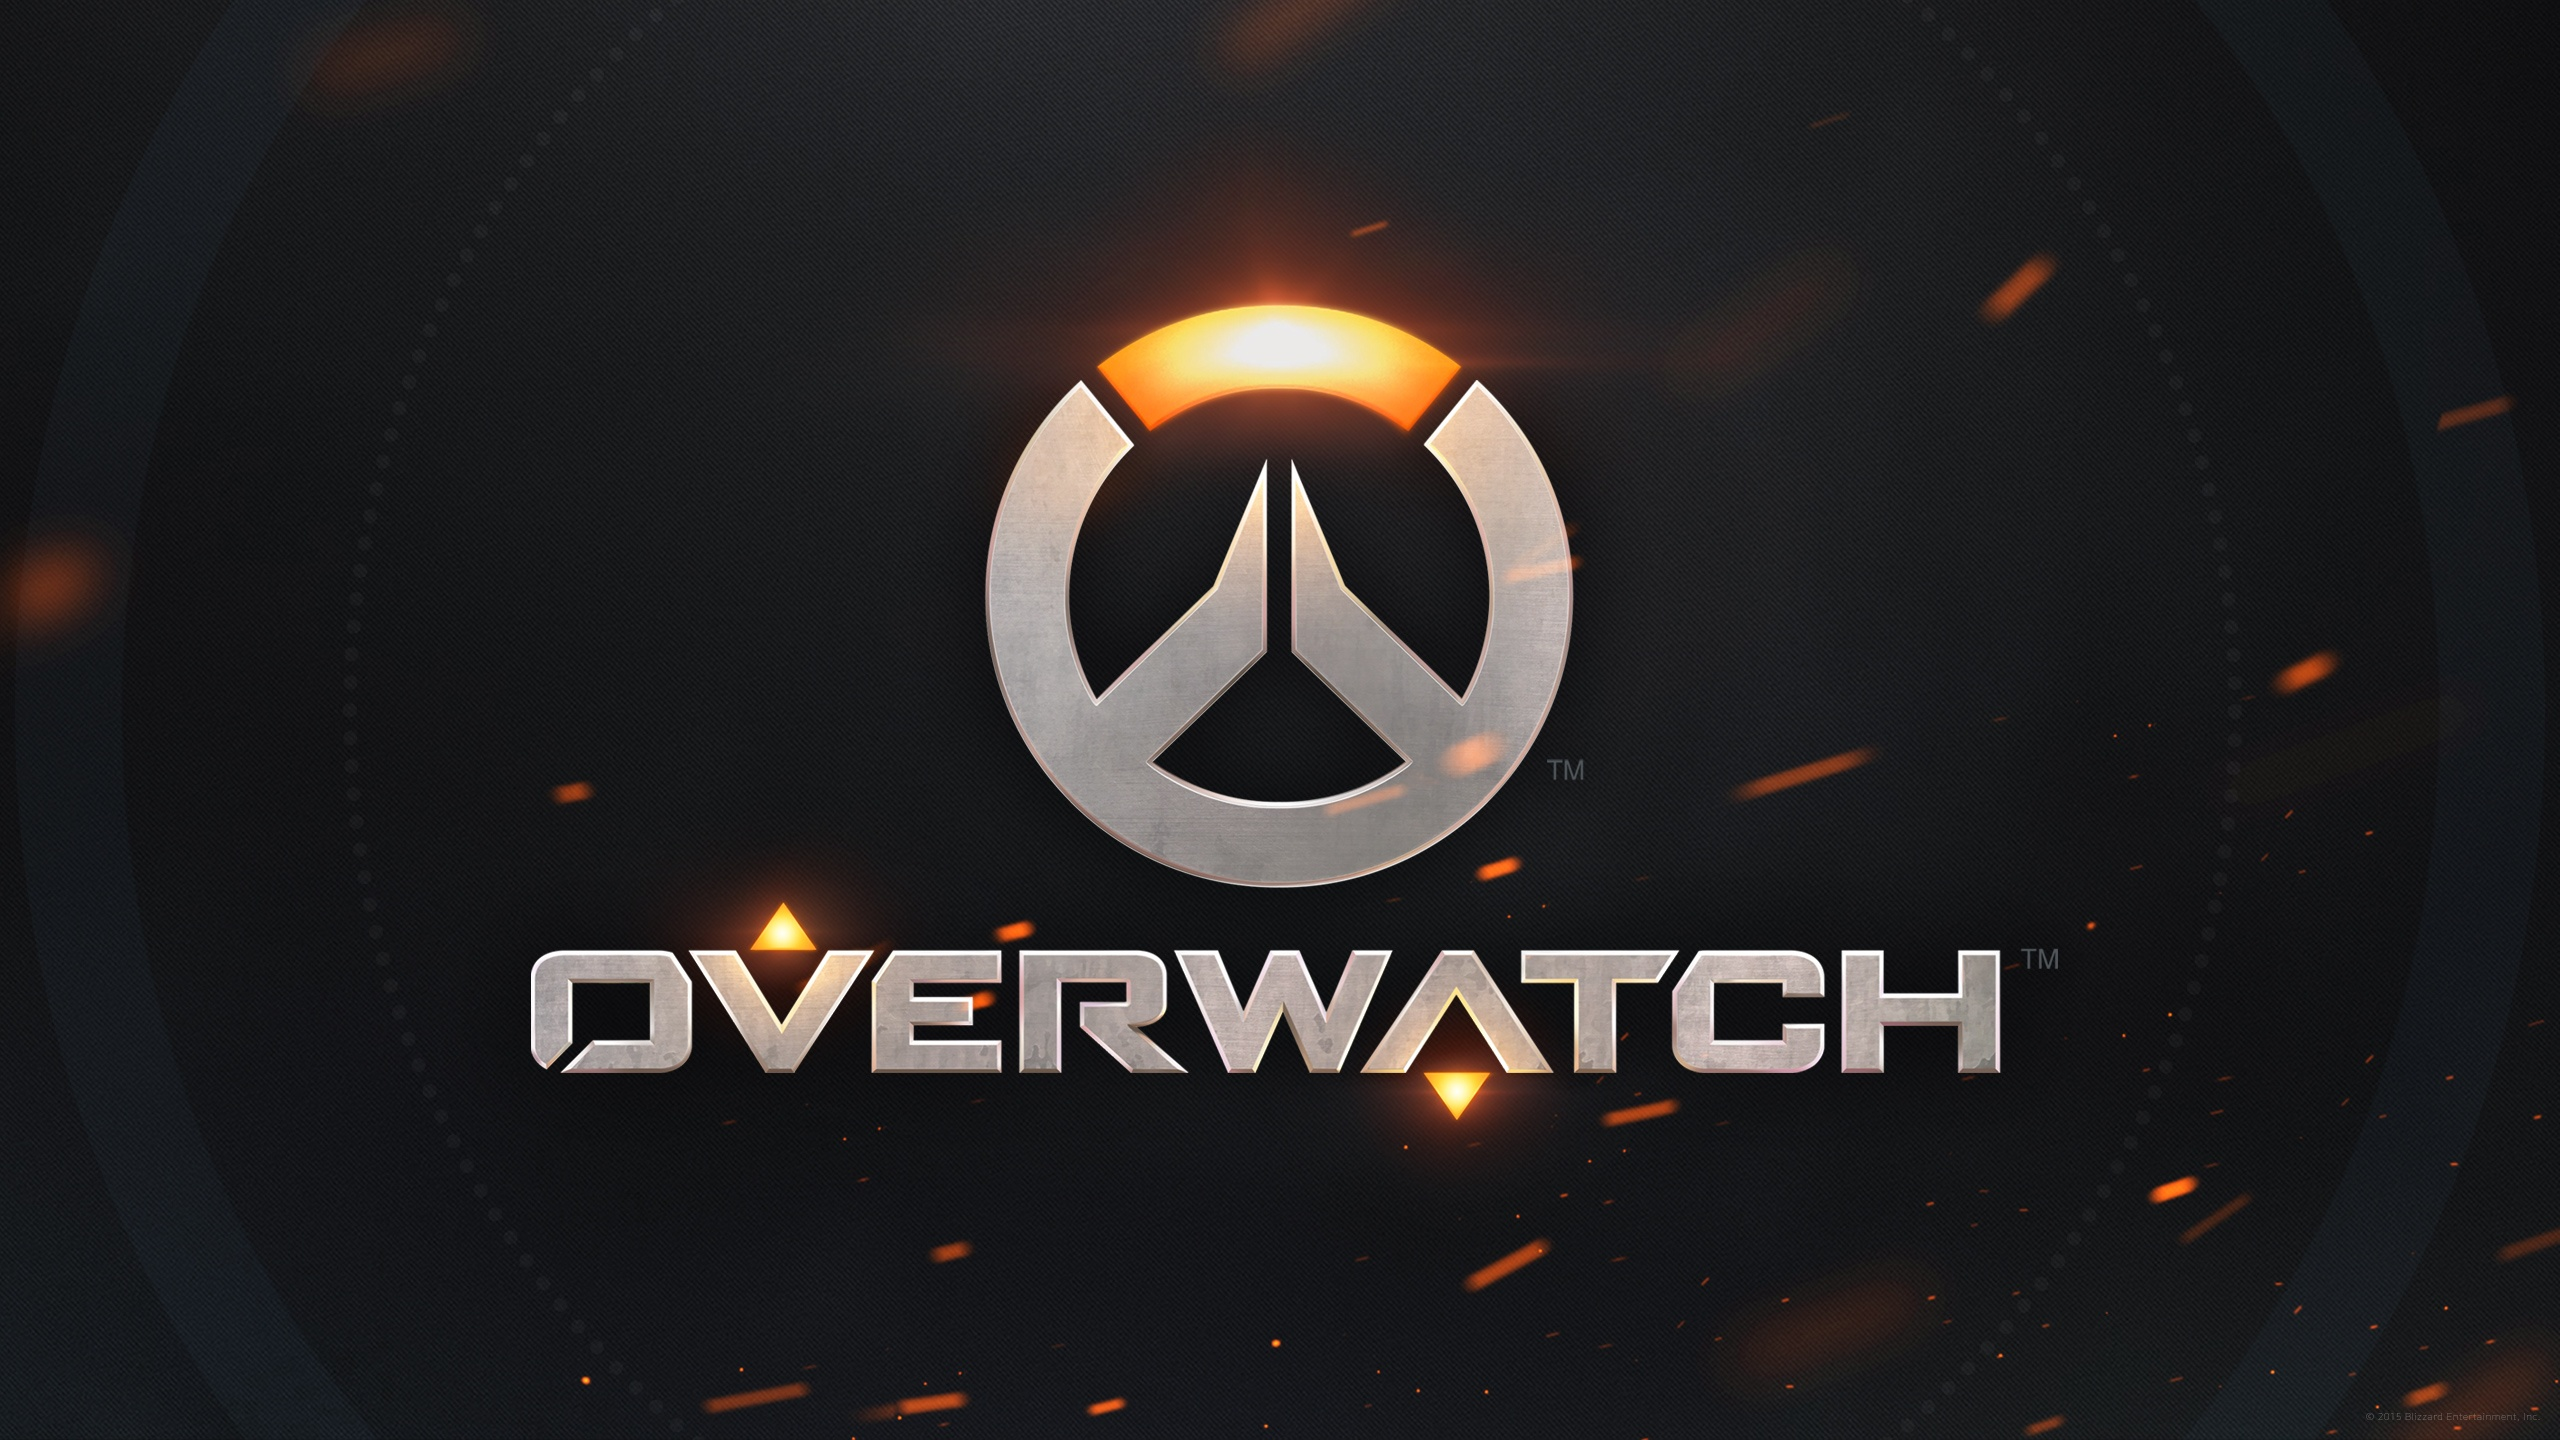 overwatch-logo-hd-wallpaper.jpg